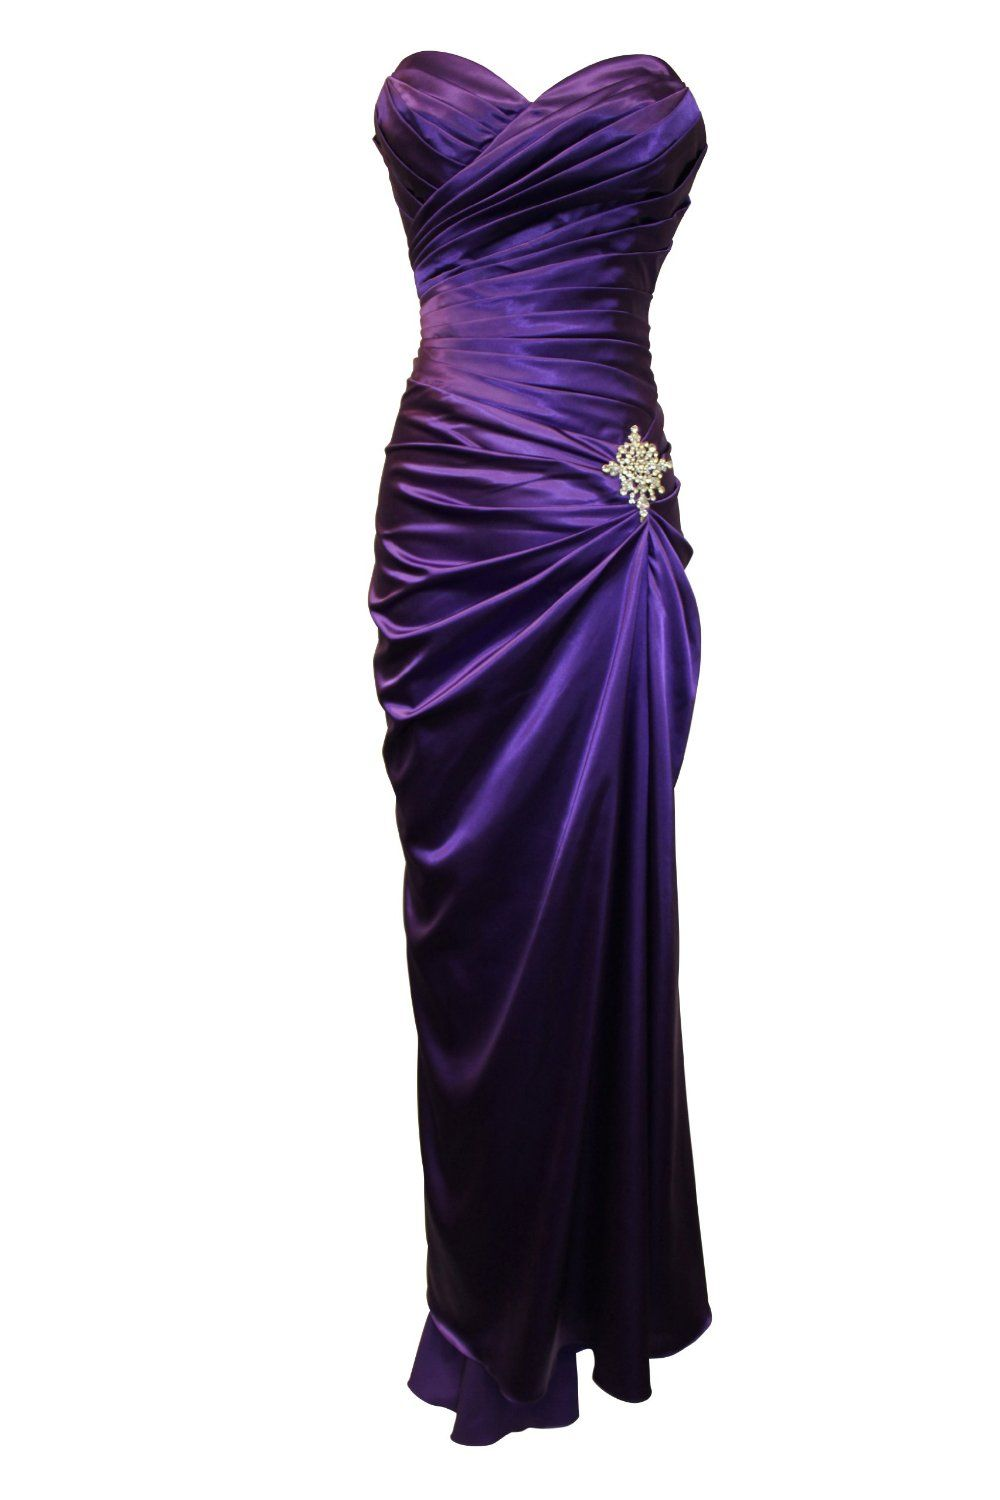 Purple bridesmaid dresses believe it we have purple prom dresses purple bridesmaid dresses believe it we have purple prom dresses under 100 prom dresses under 100formal ombrellifo Image collections